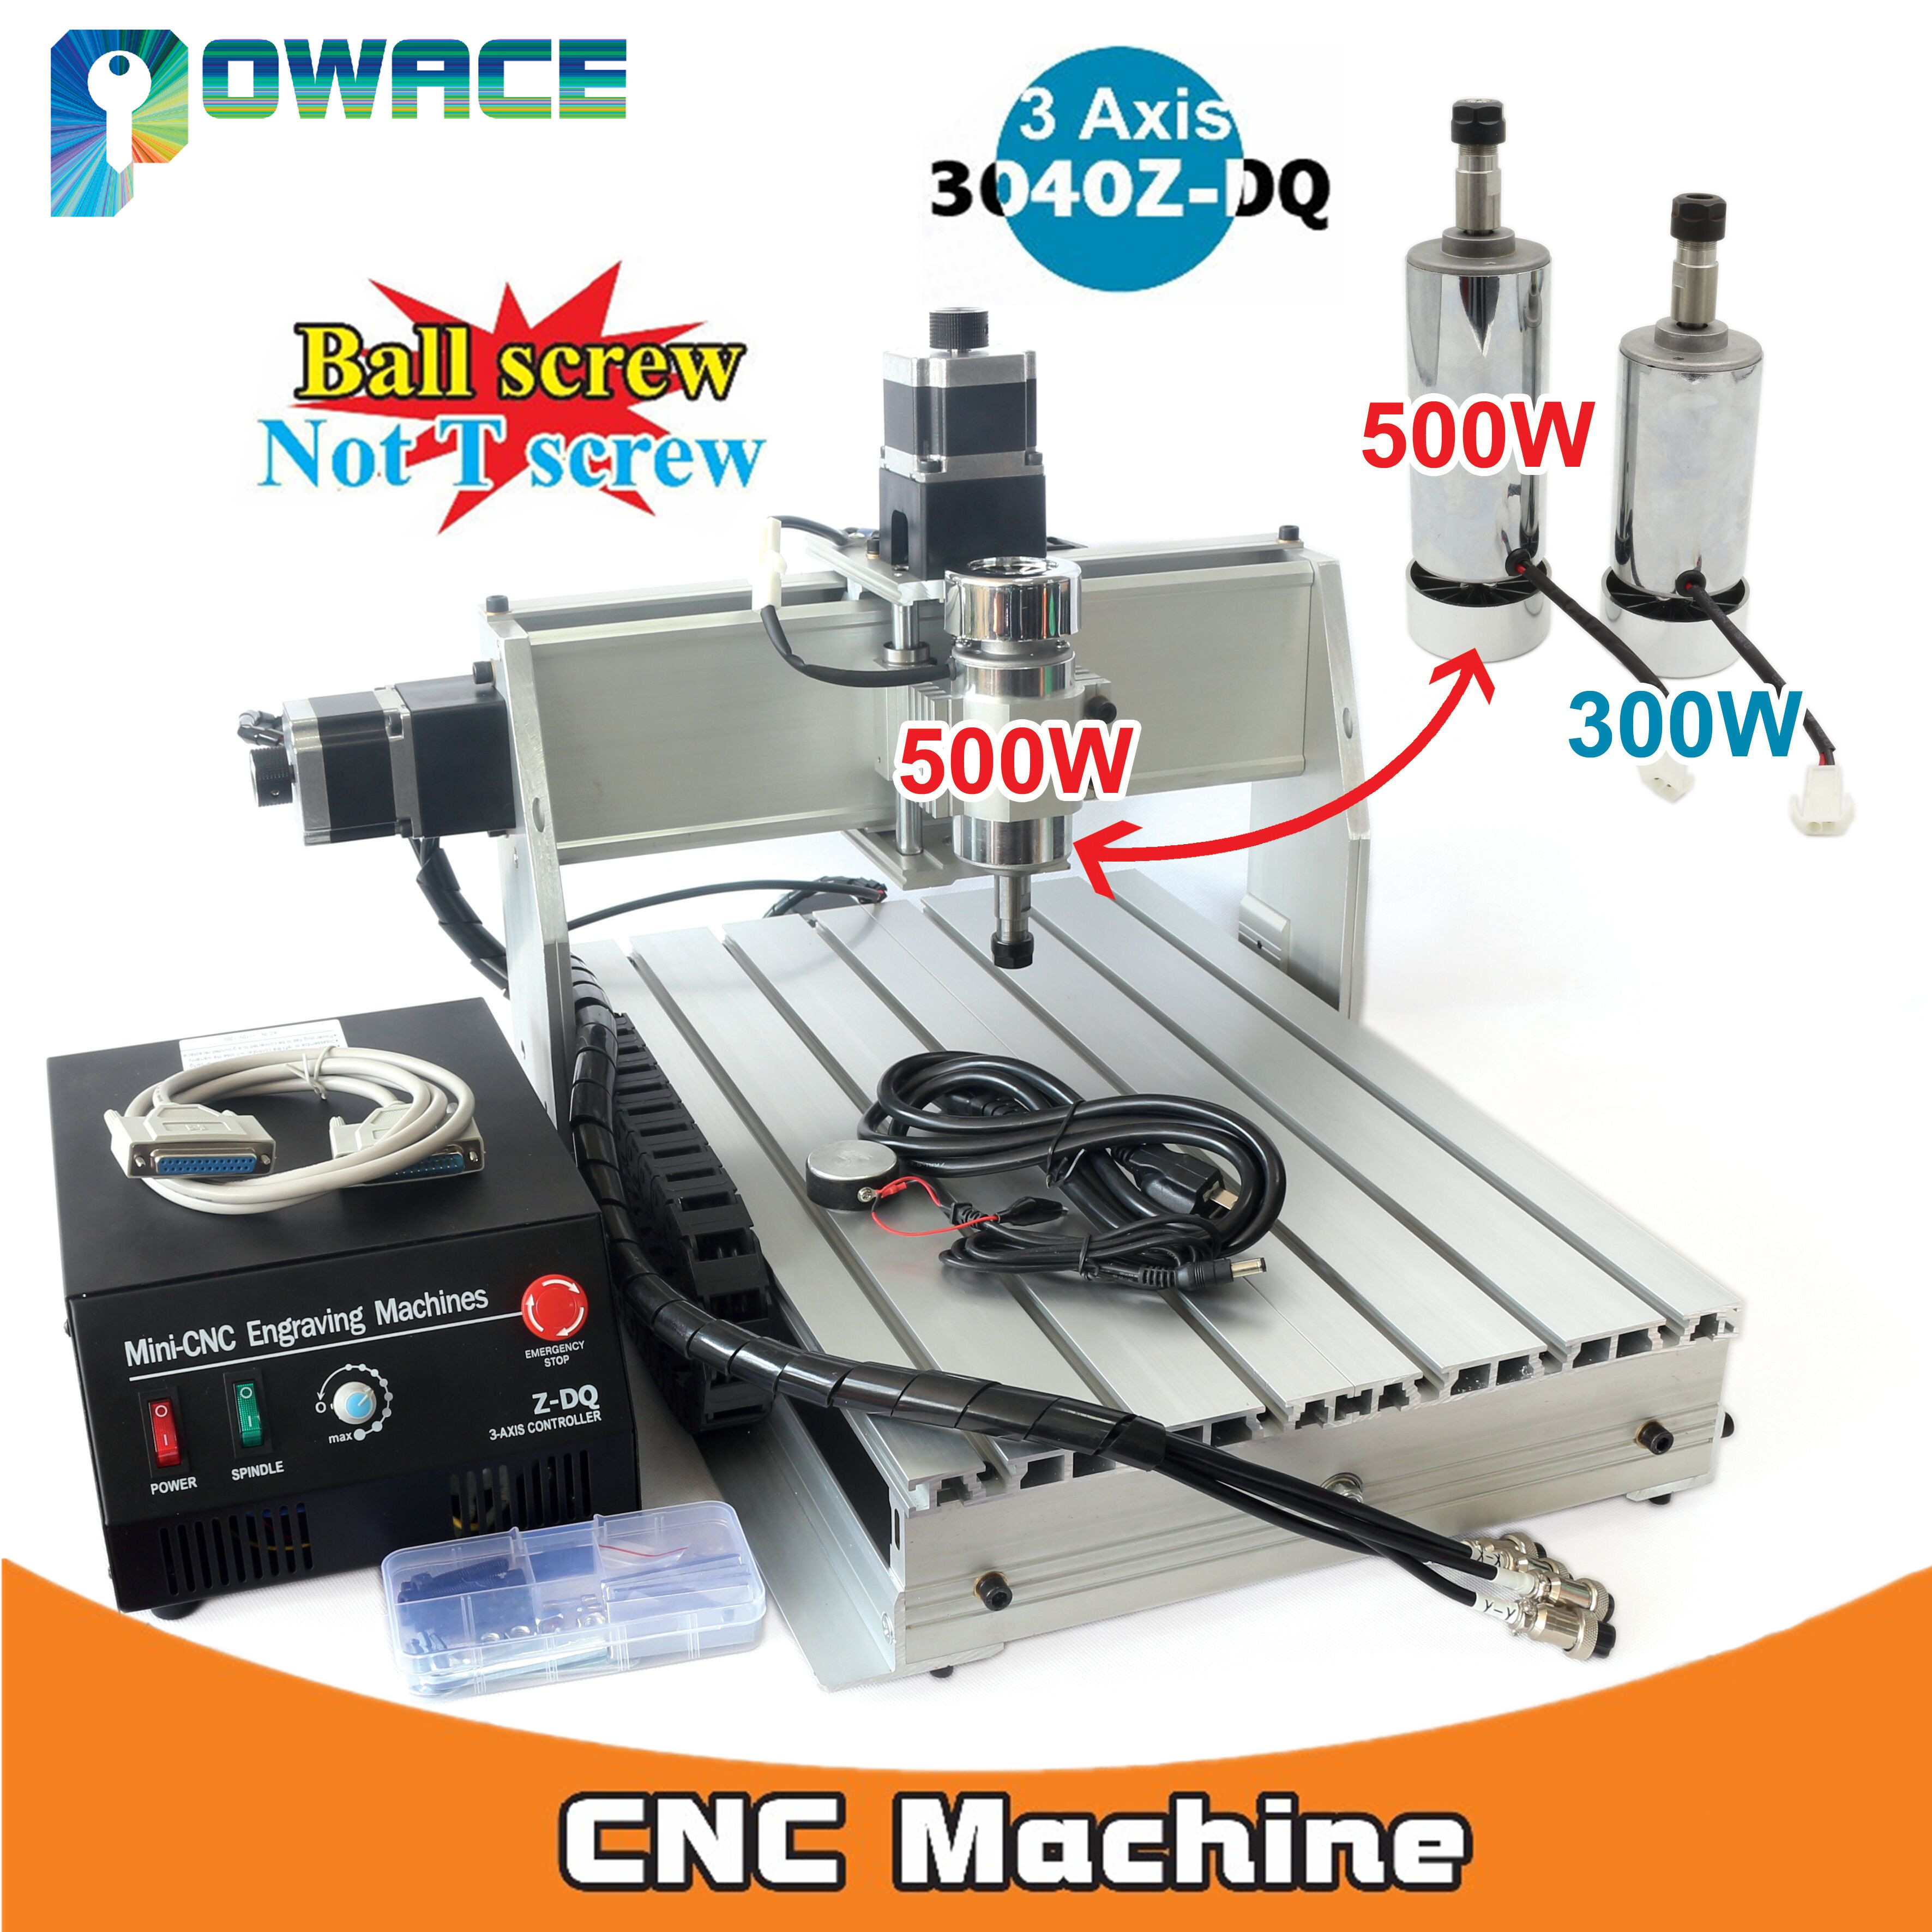 [EU Stock/Free VAT] 3 Axis 500W 3040Z-DQ Parallel Port Desktop Ball Screw 3040 CNC Router Engraving Milling Machine 220V